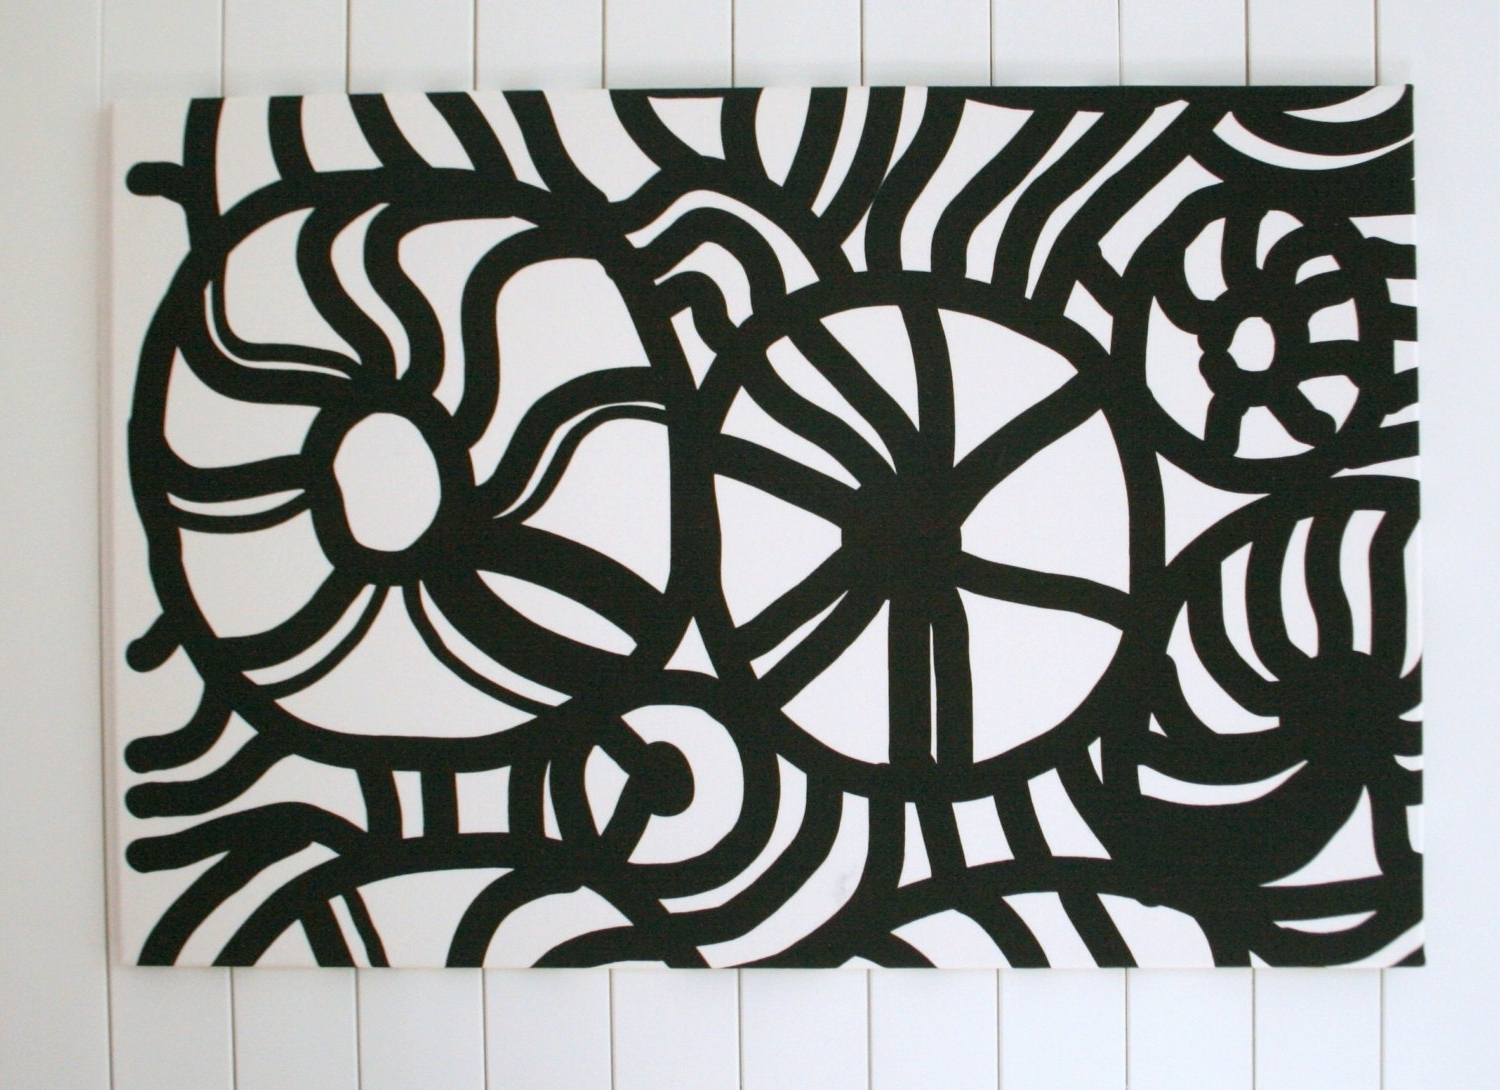 The Best Abstract Fabric Wall Art For Most Current Black And White Fabric Wall Art (View 13 of 15)